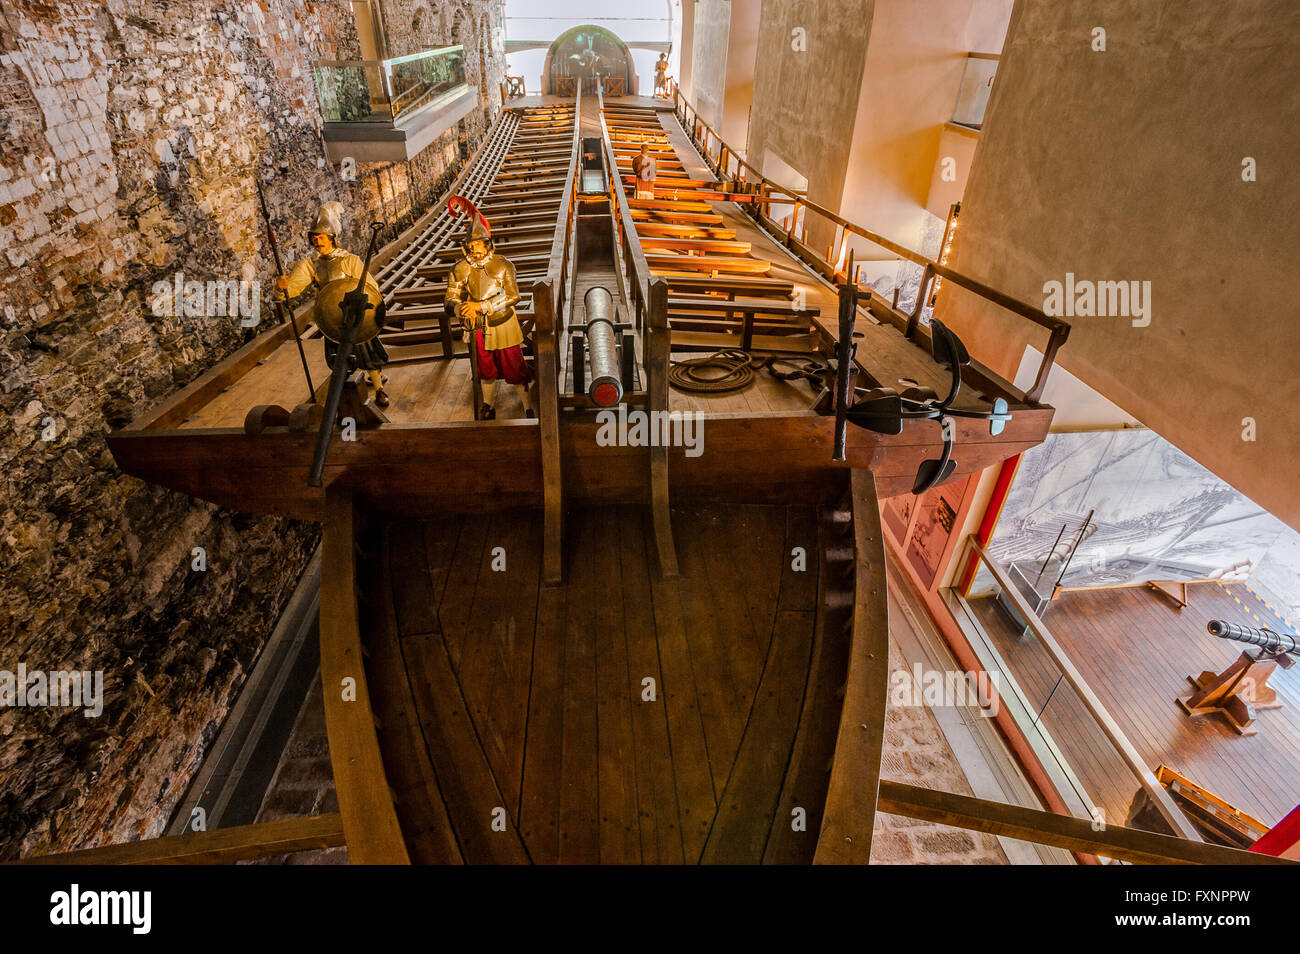 Galata Museo Del Mare.Italy Liguria Genoa Galata Museo Del Mare Arsenal The Galley On